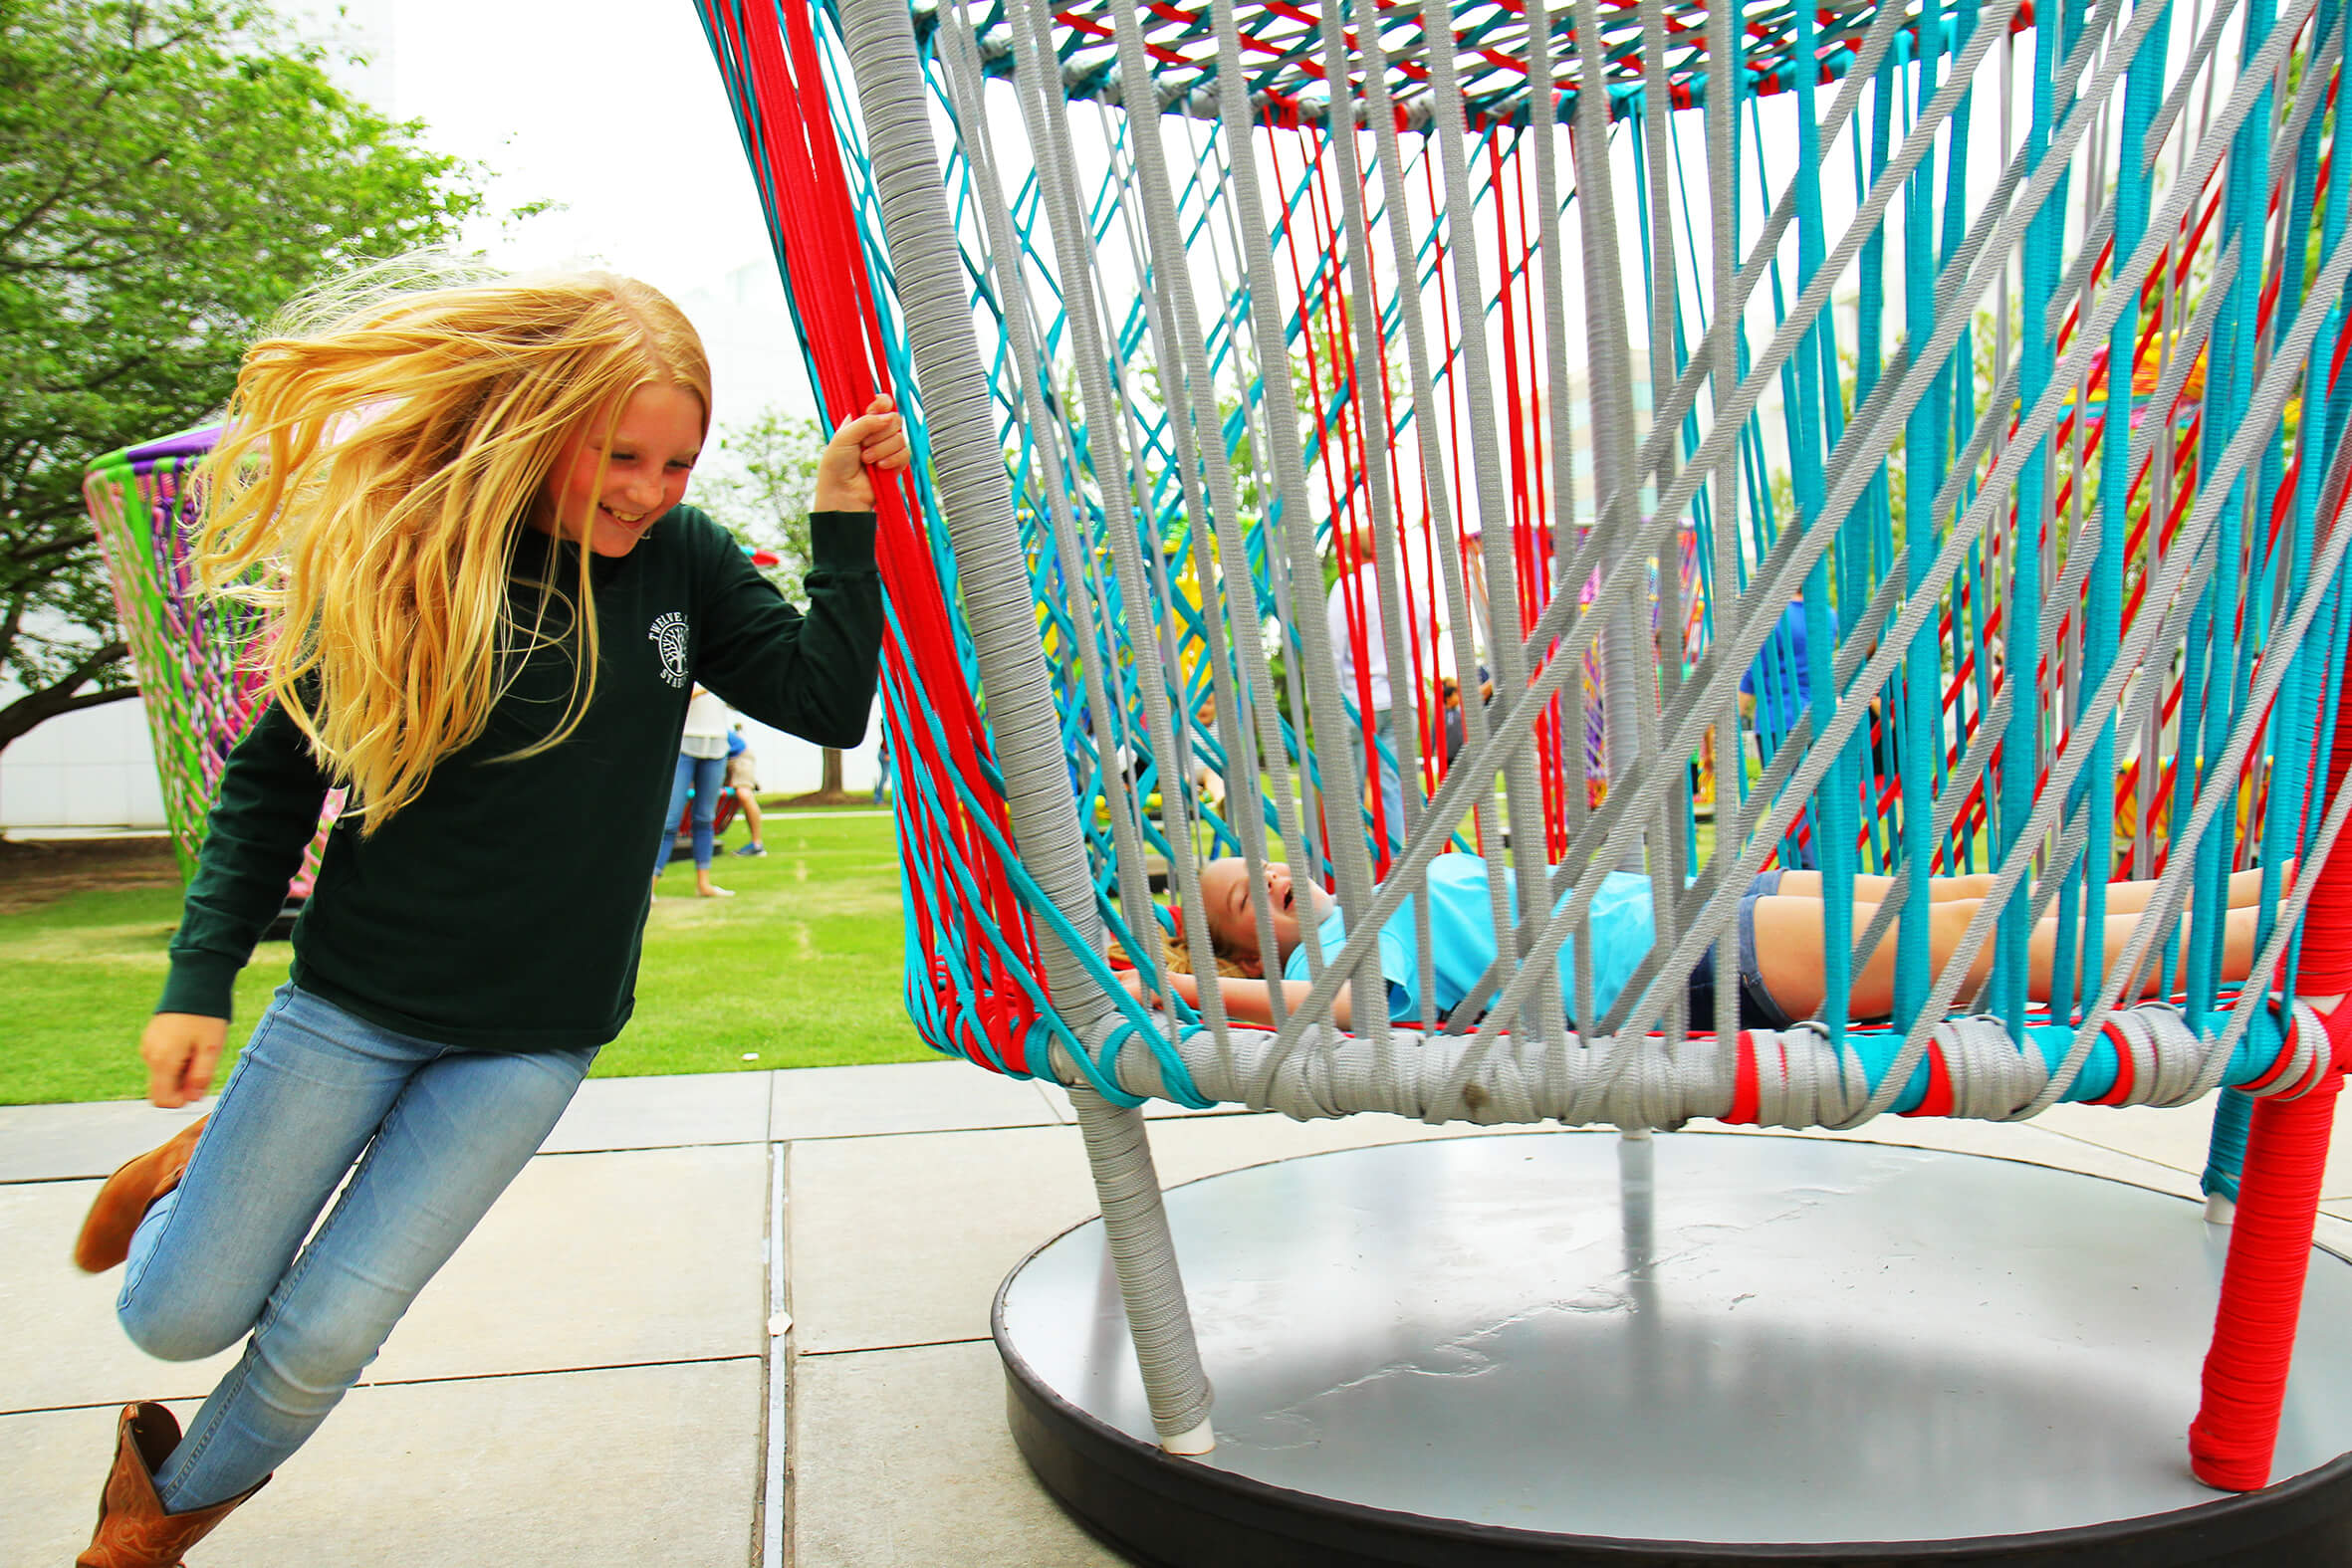 FREE Family Events To Do With KIDS In May